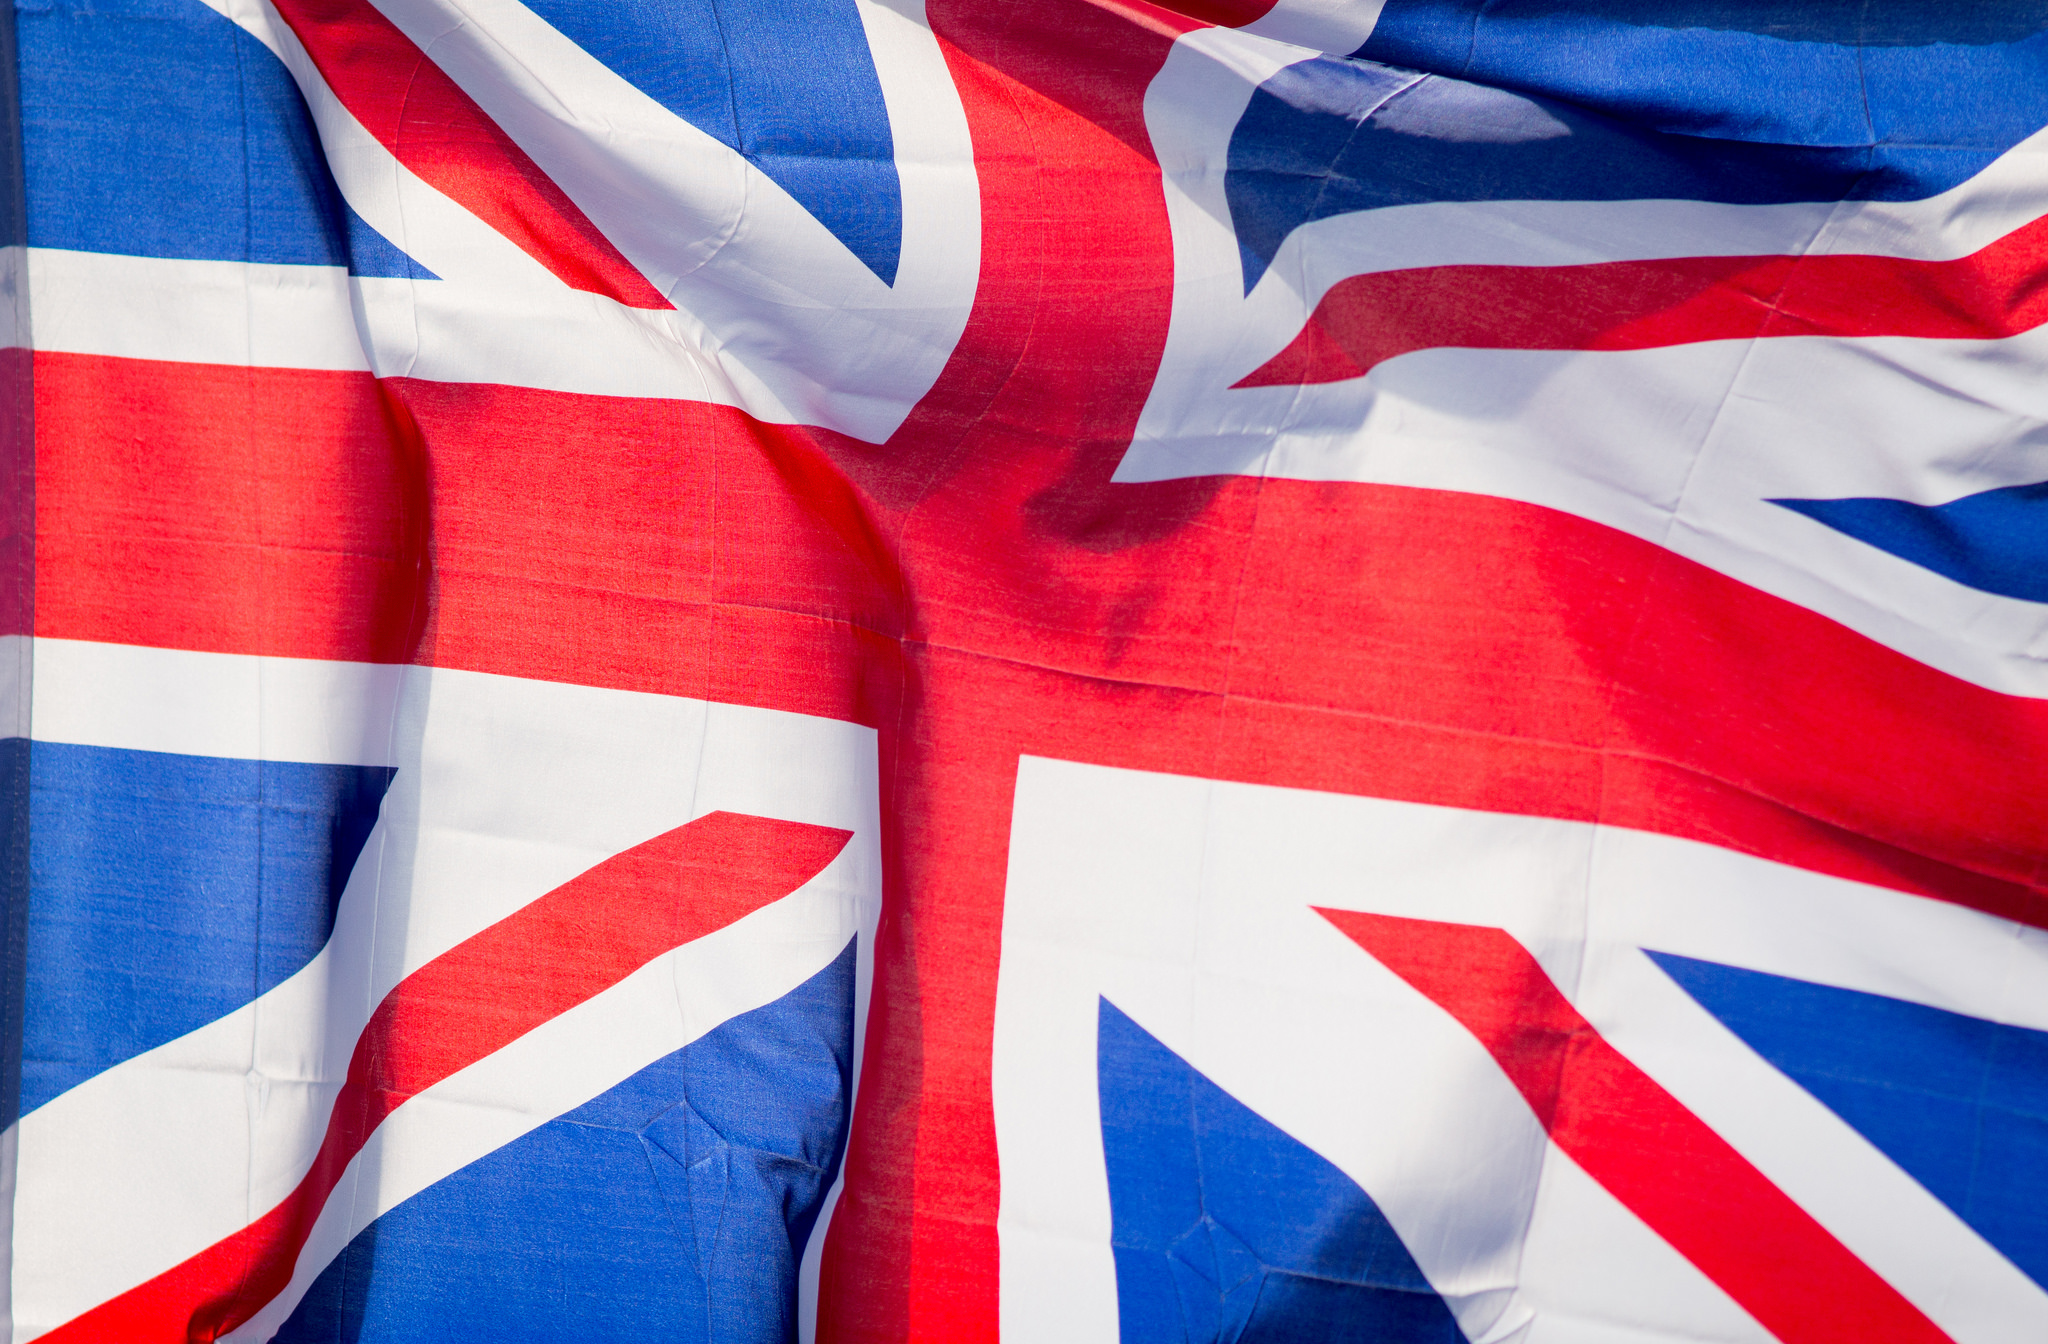 Union Jack Flag - Photograph